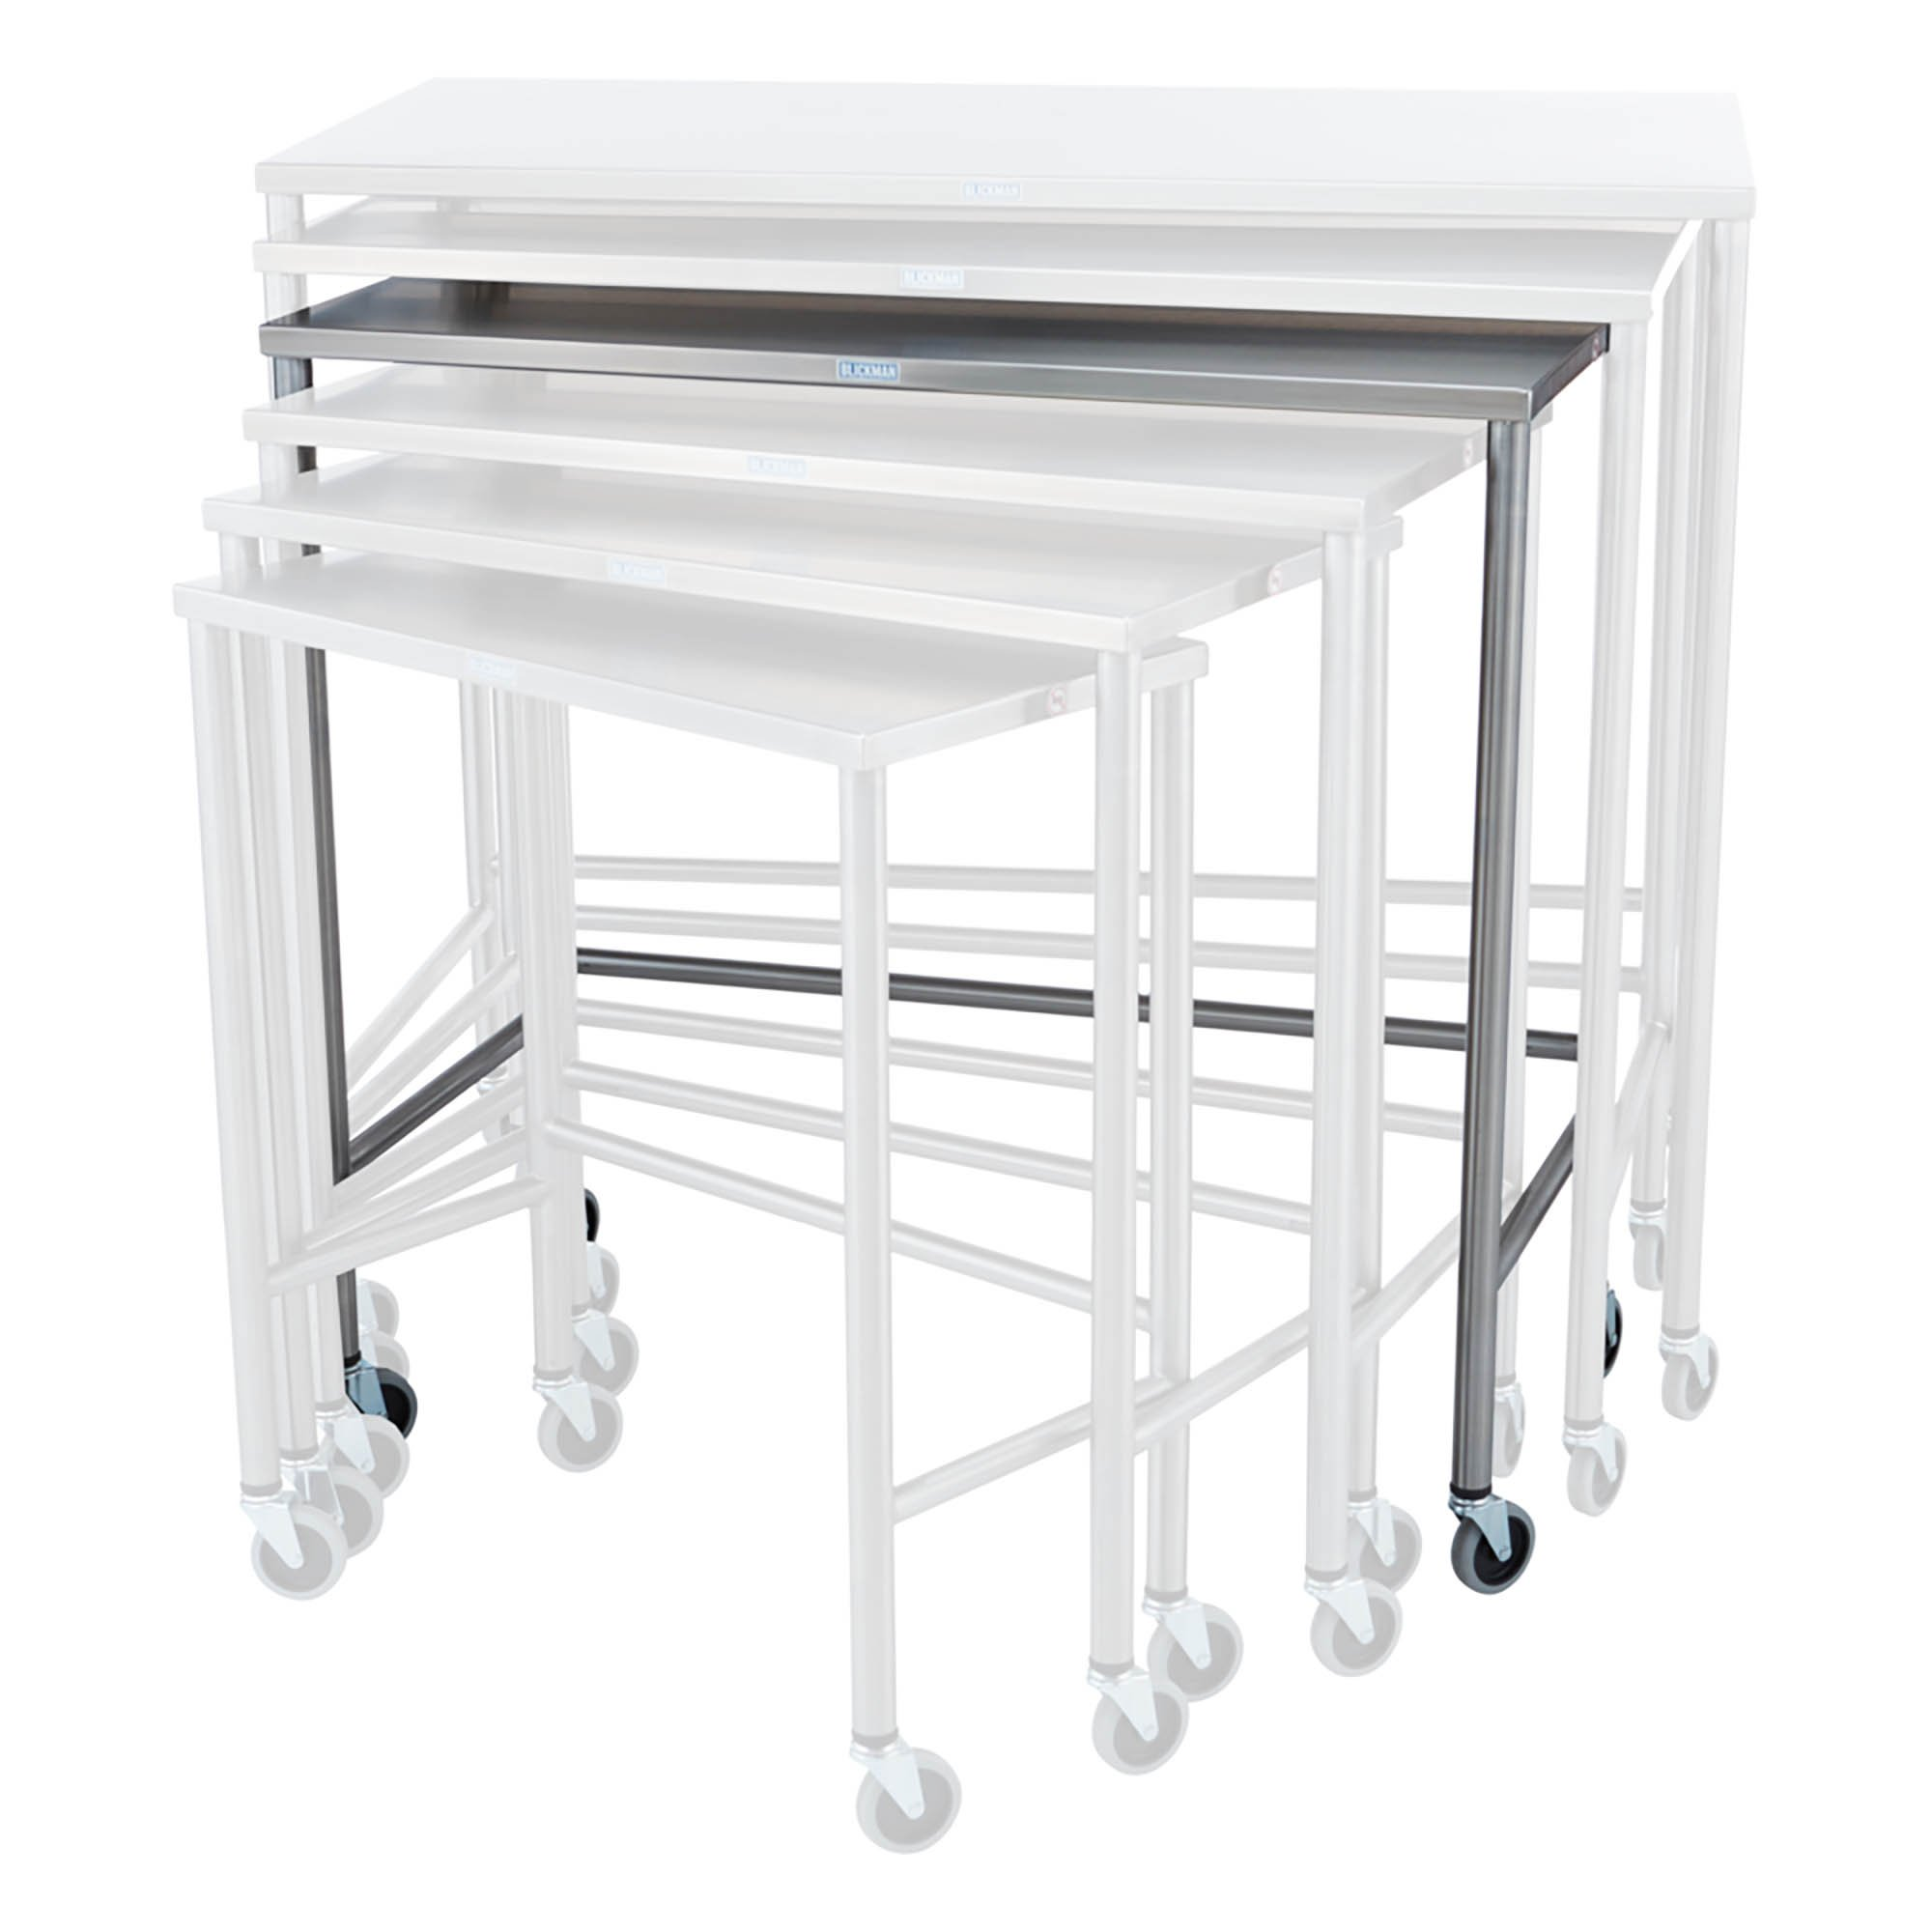 Nested Instrument Table - 40